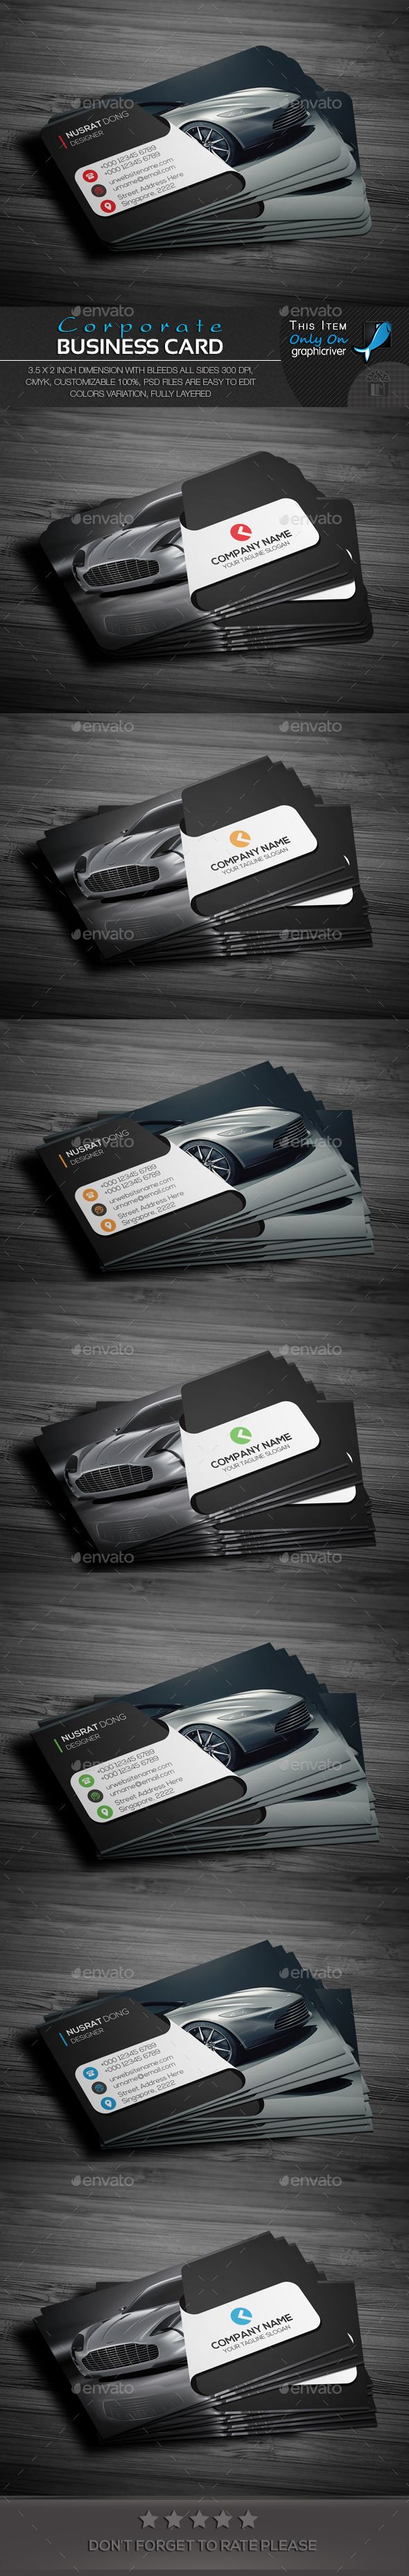 366 best business card design images on pinterest